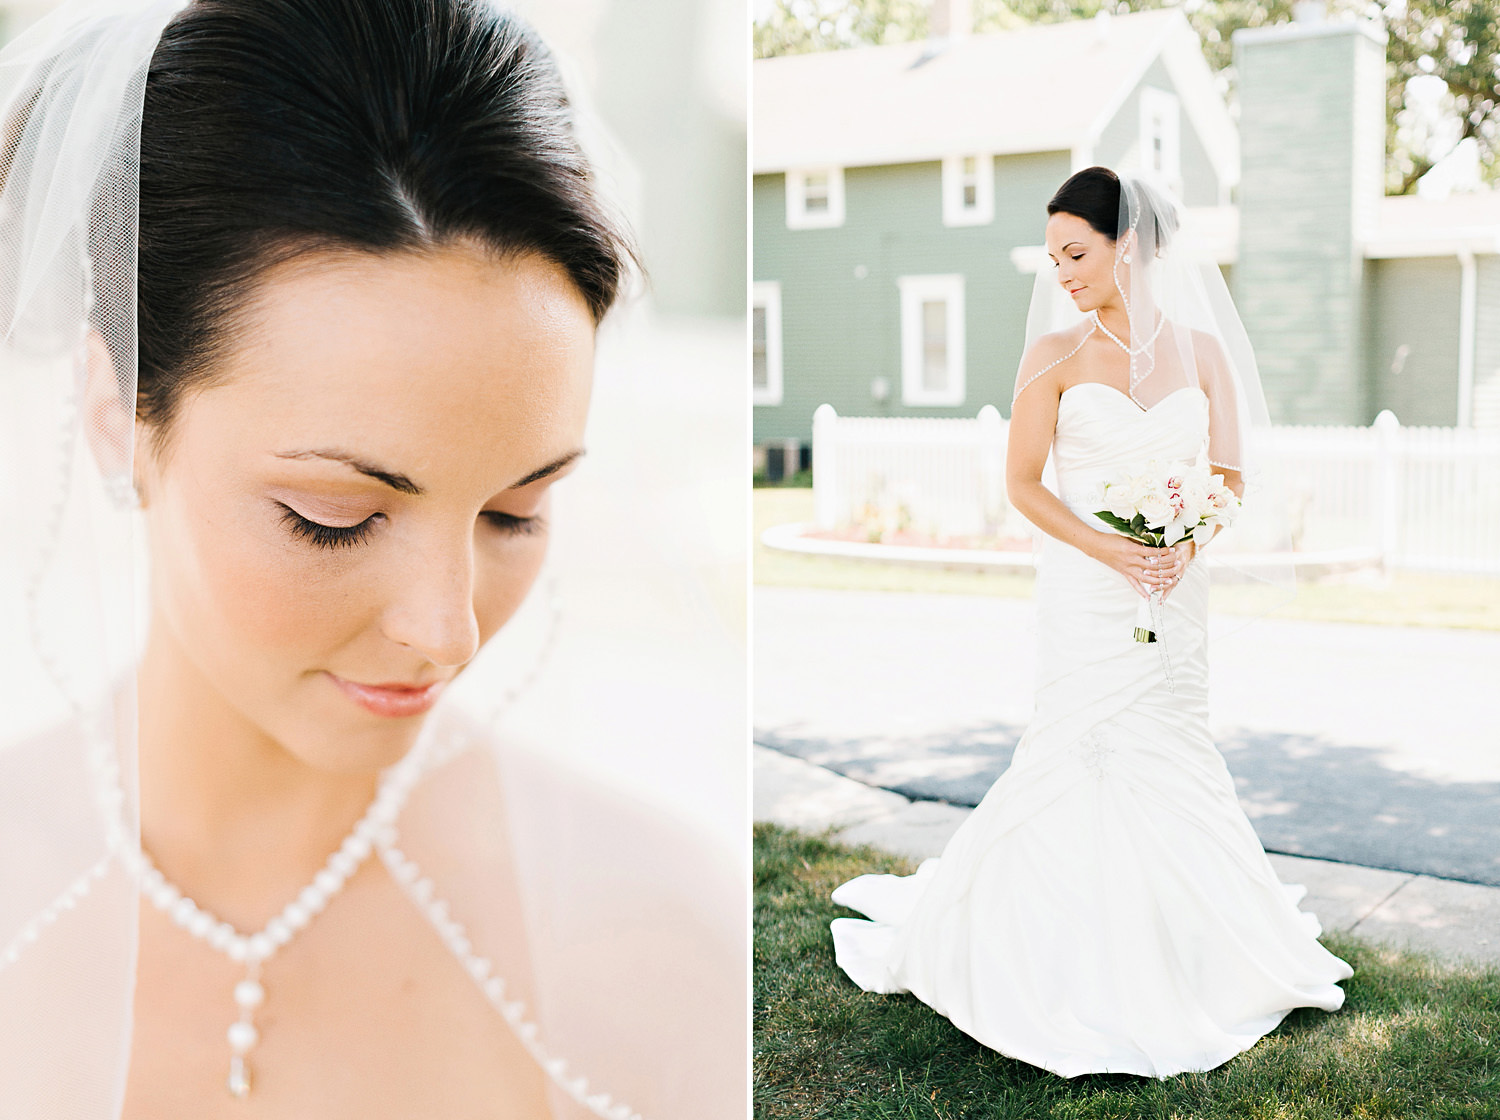 Bridal Portraits in Bourbonnais, Illinois.